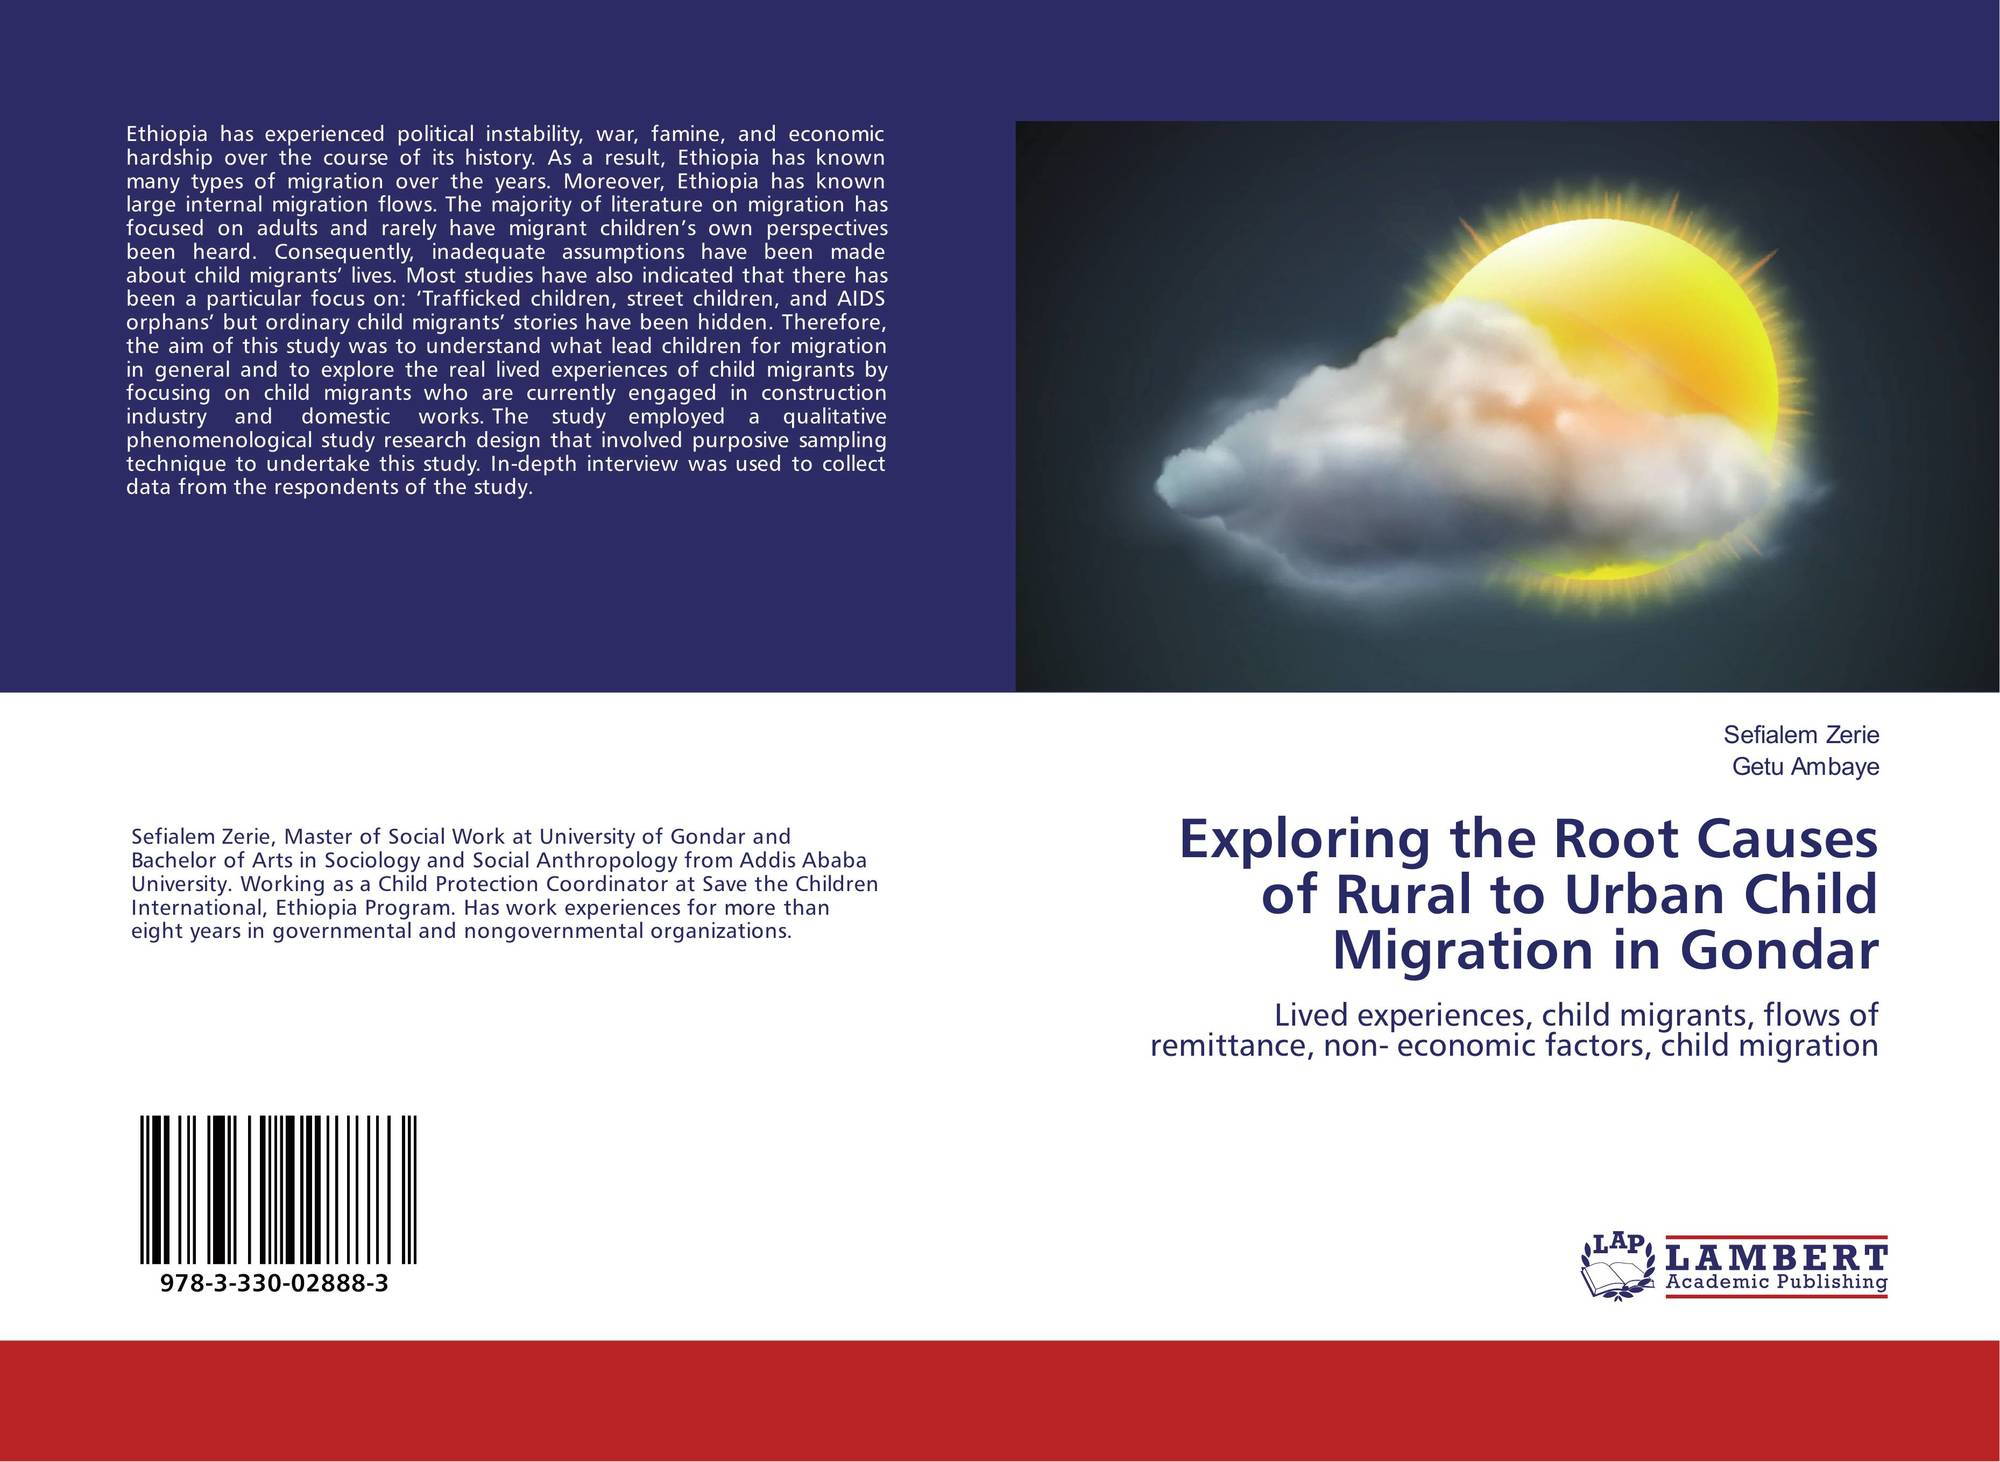 root causes of migration The focus of this paper is a critique of the root causes approach to migration   approach, rural to urban migration, is examined to provide material for a.